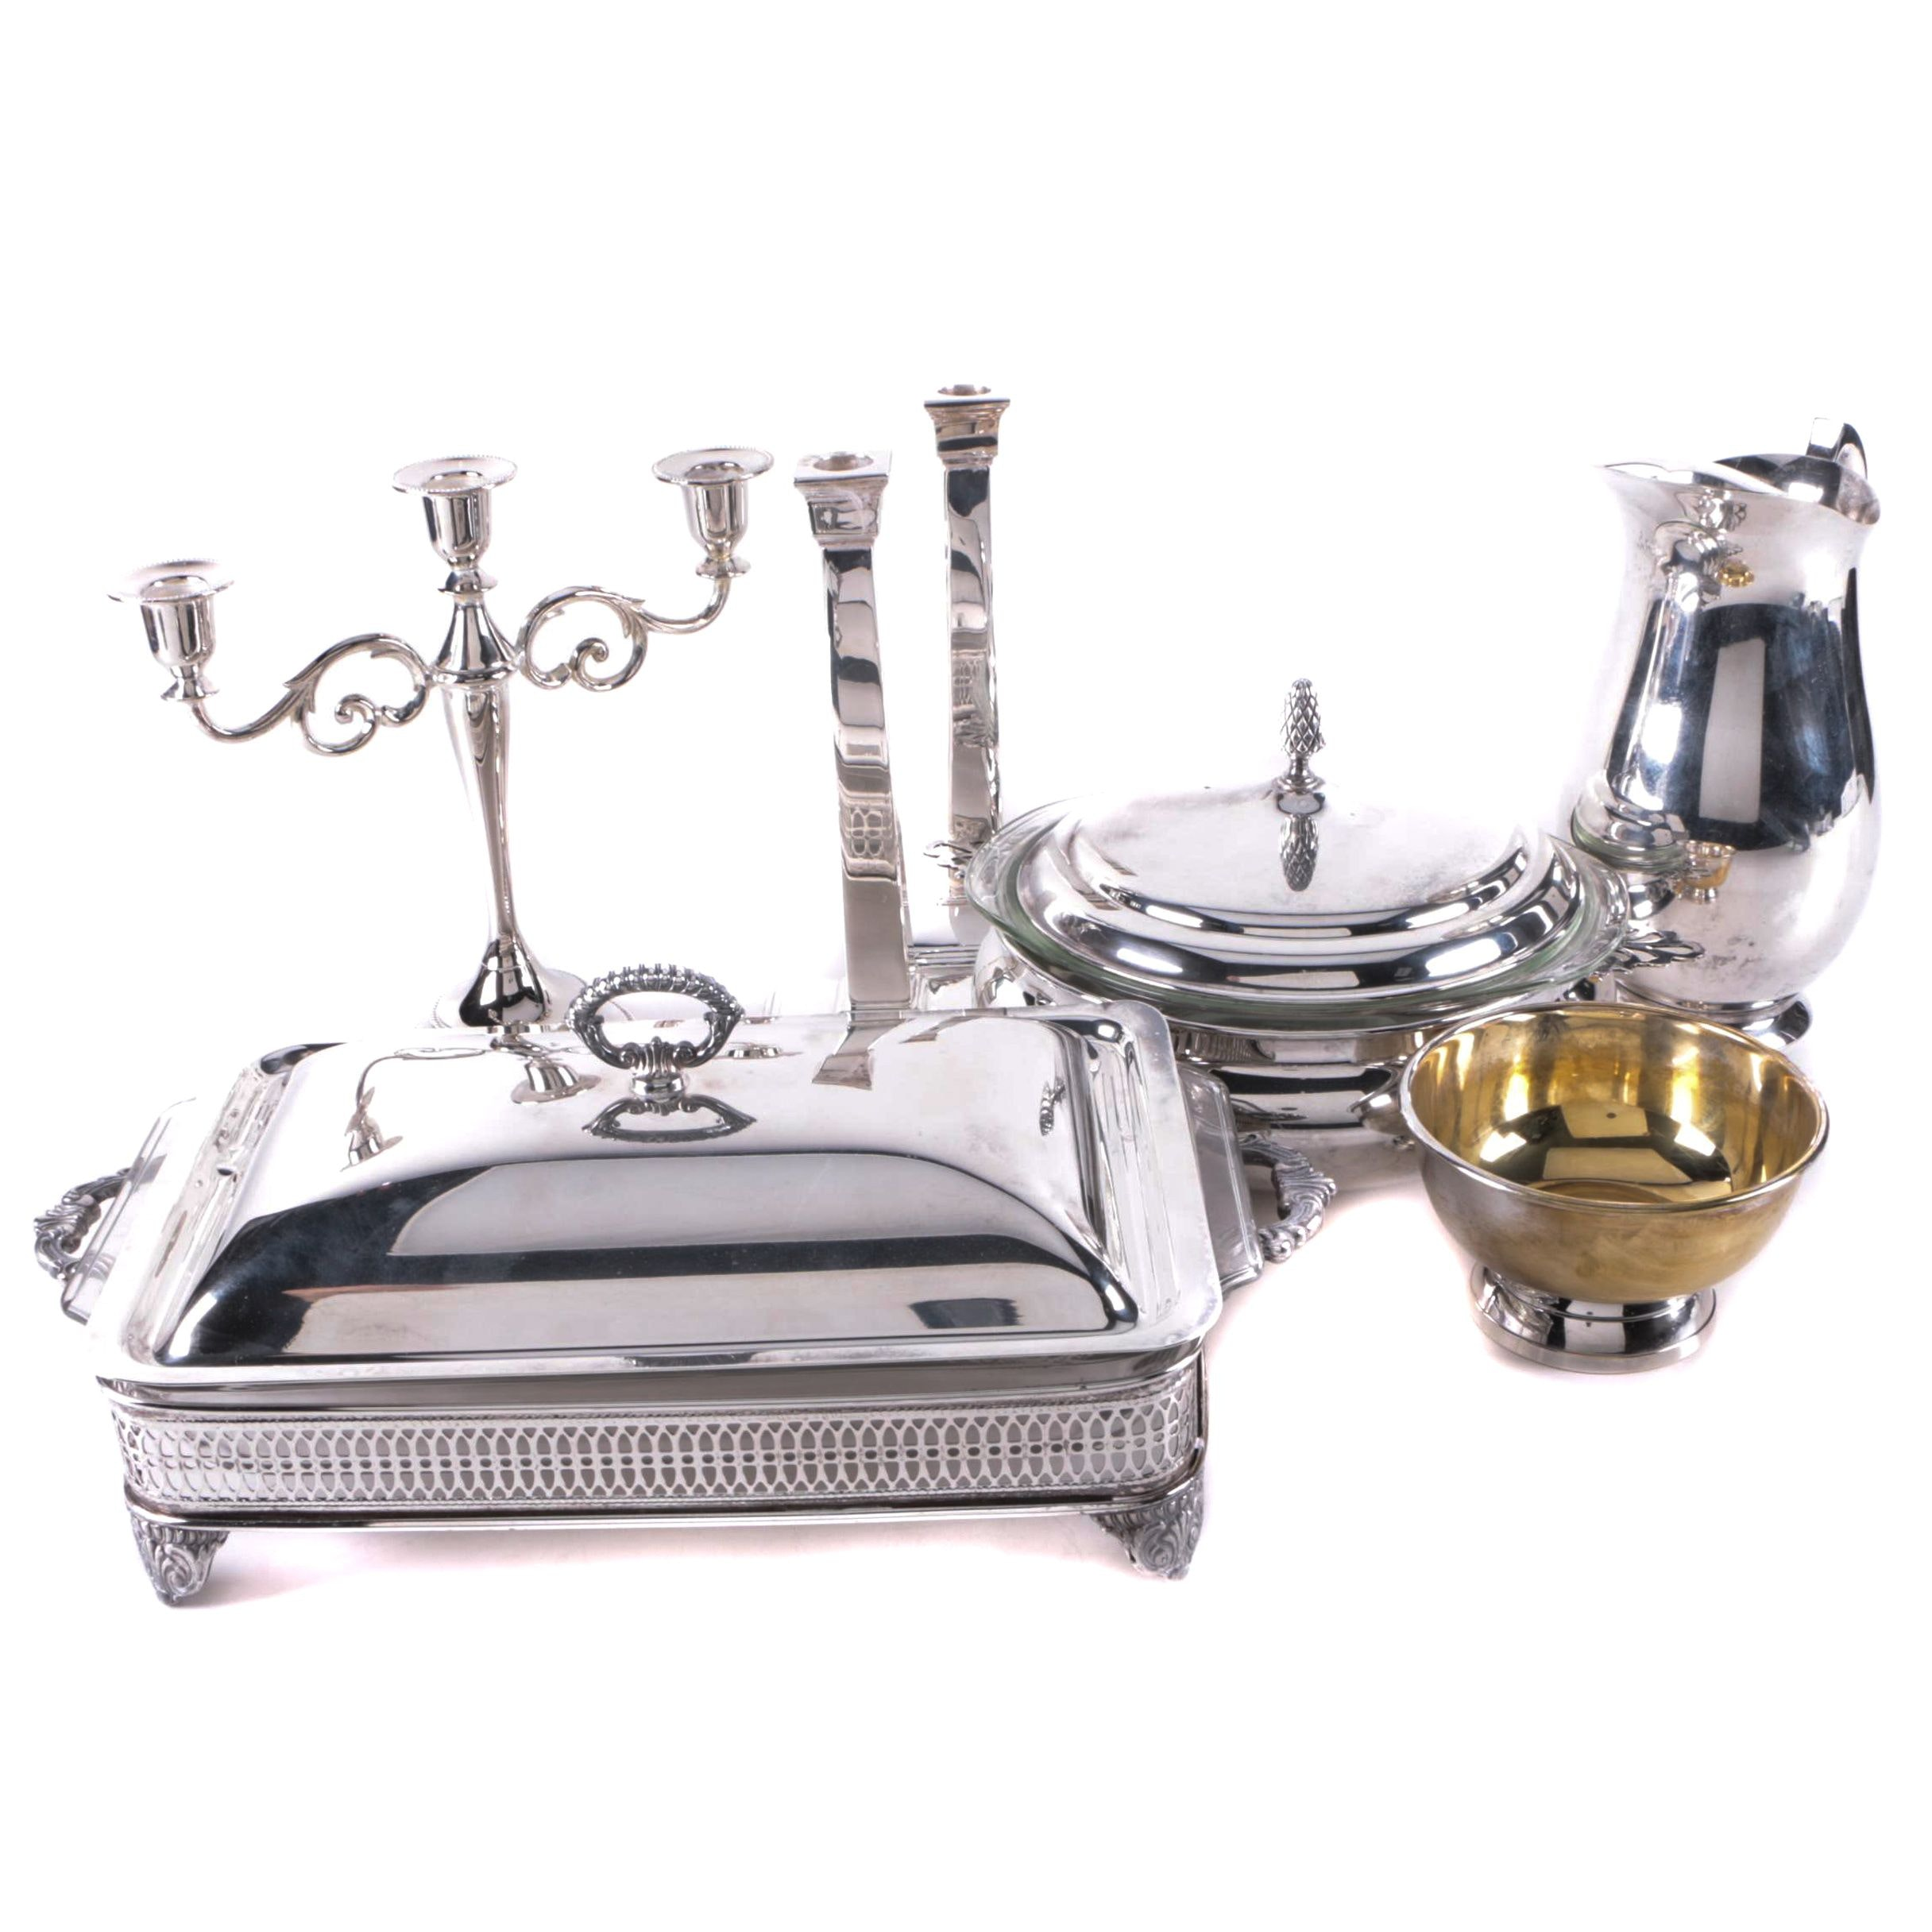 International Silver Co Silver Plate Candelabrum and Assorted Silver Plate